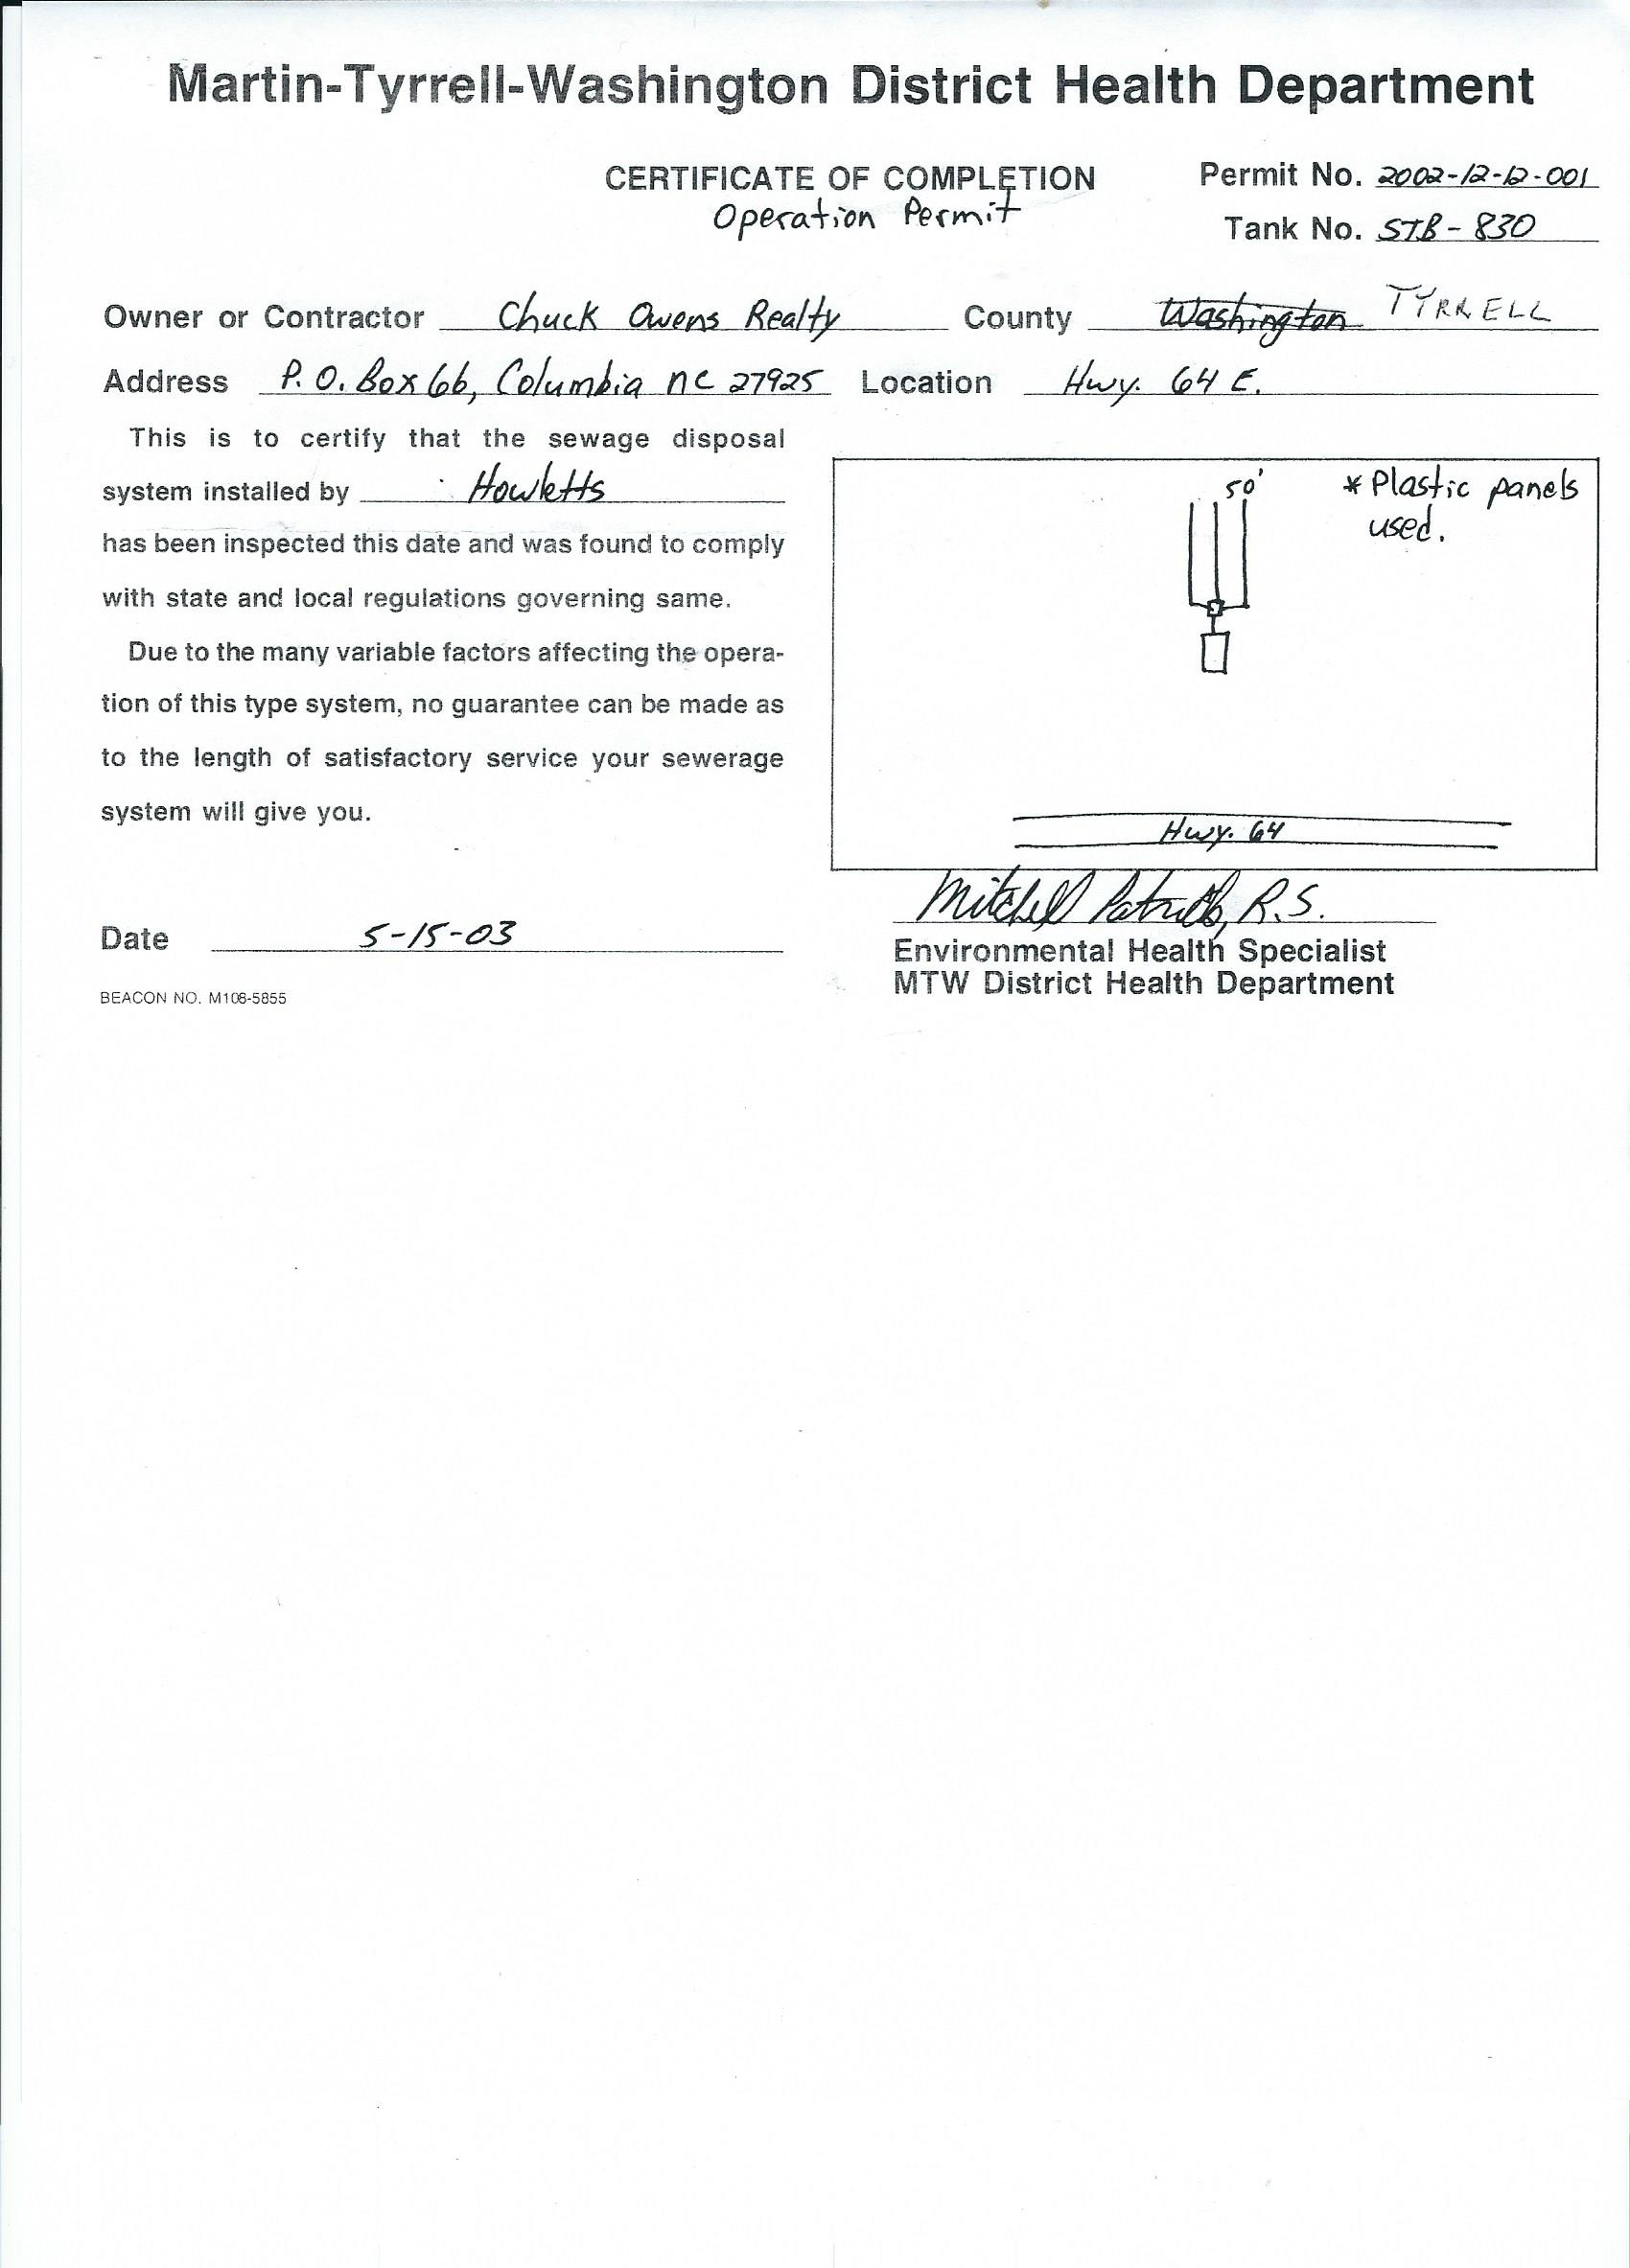 Septic System Operation Permit